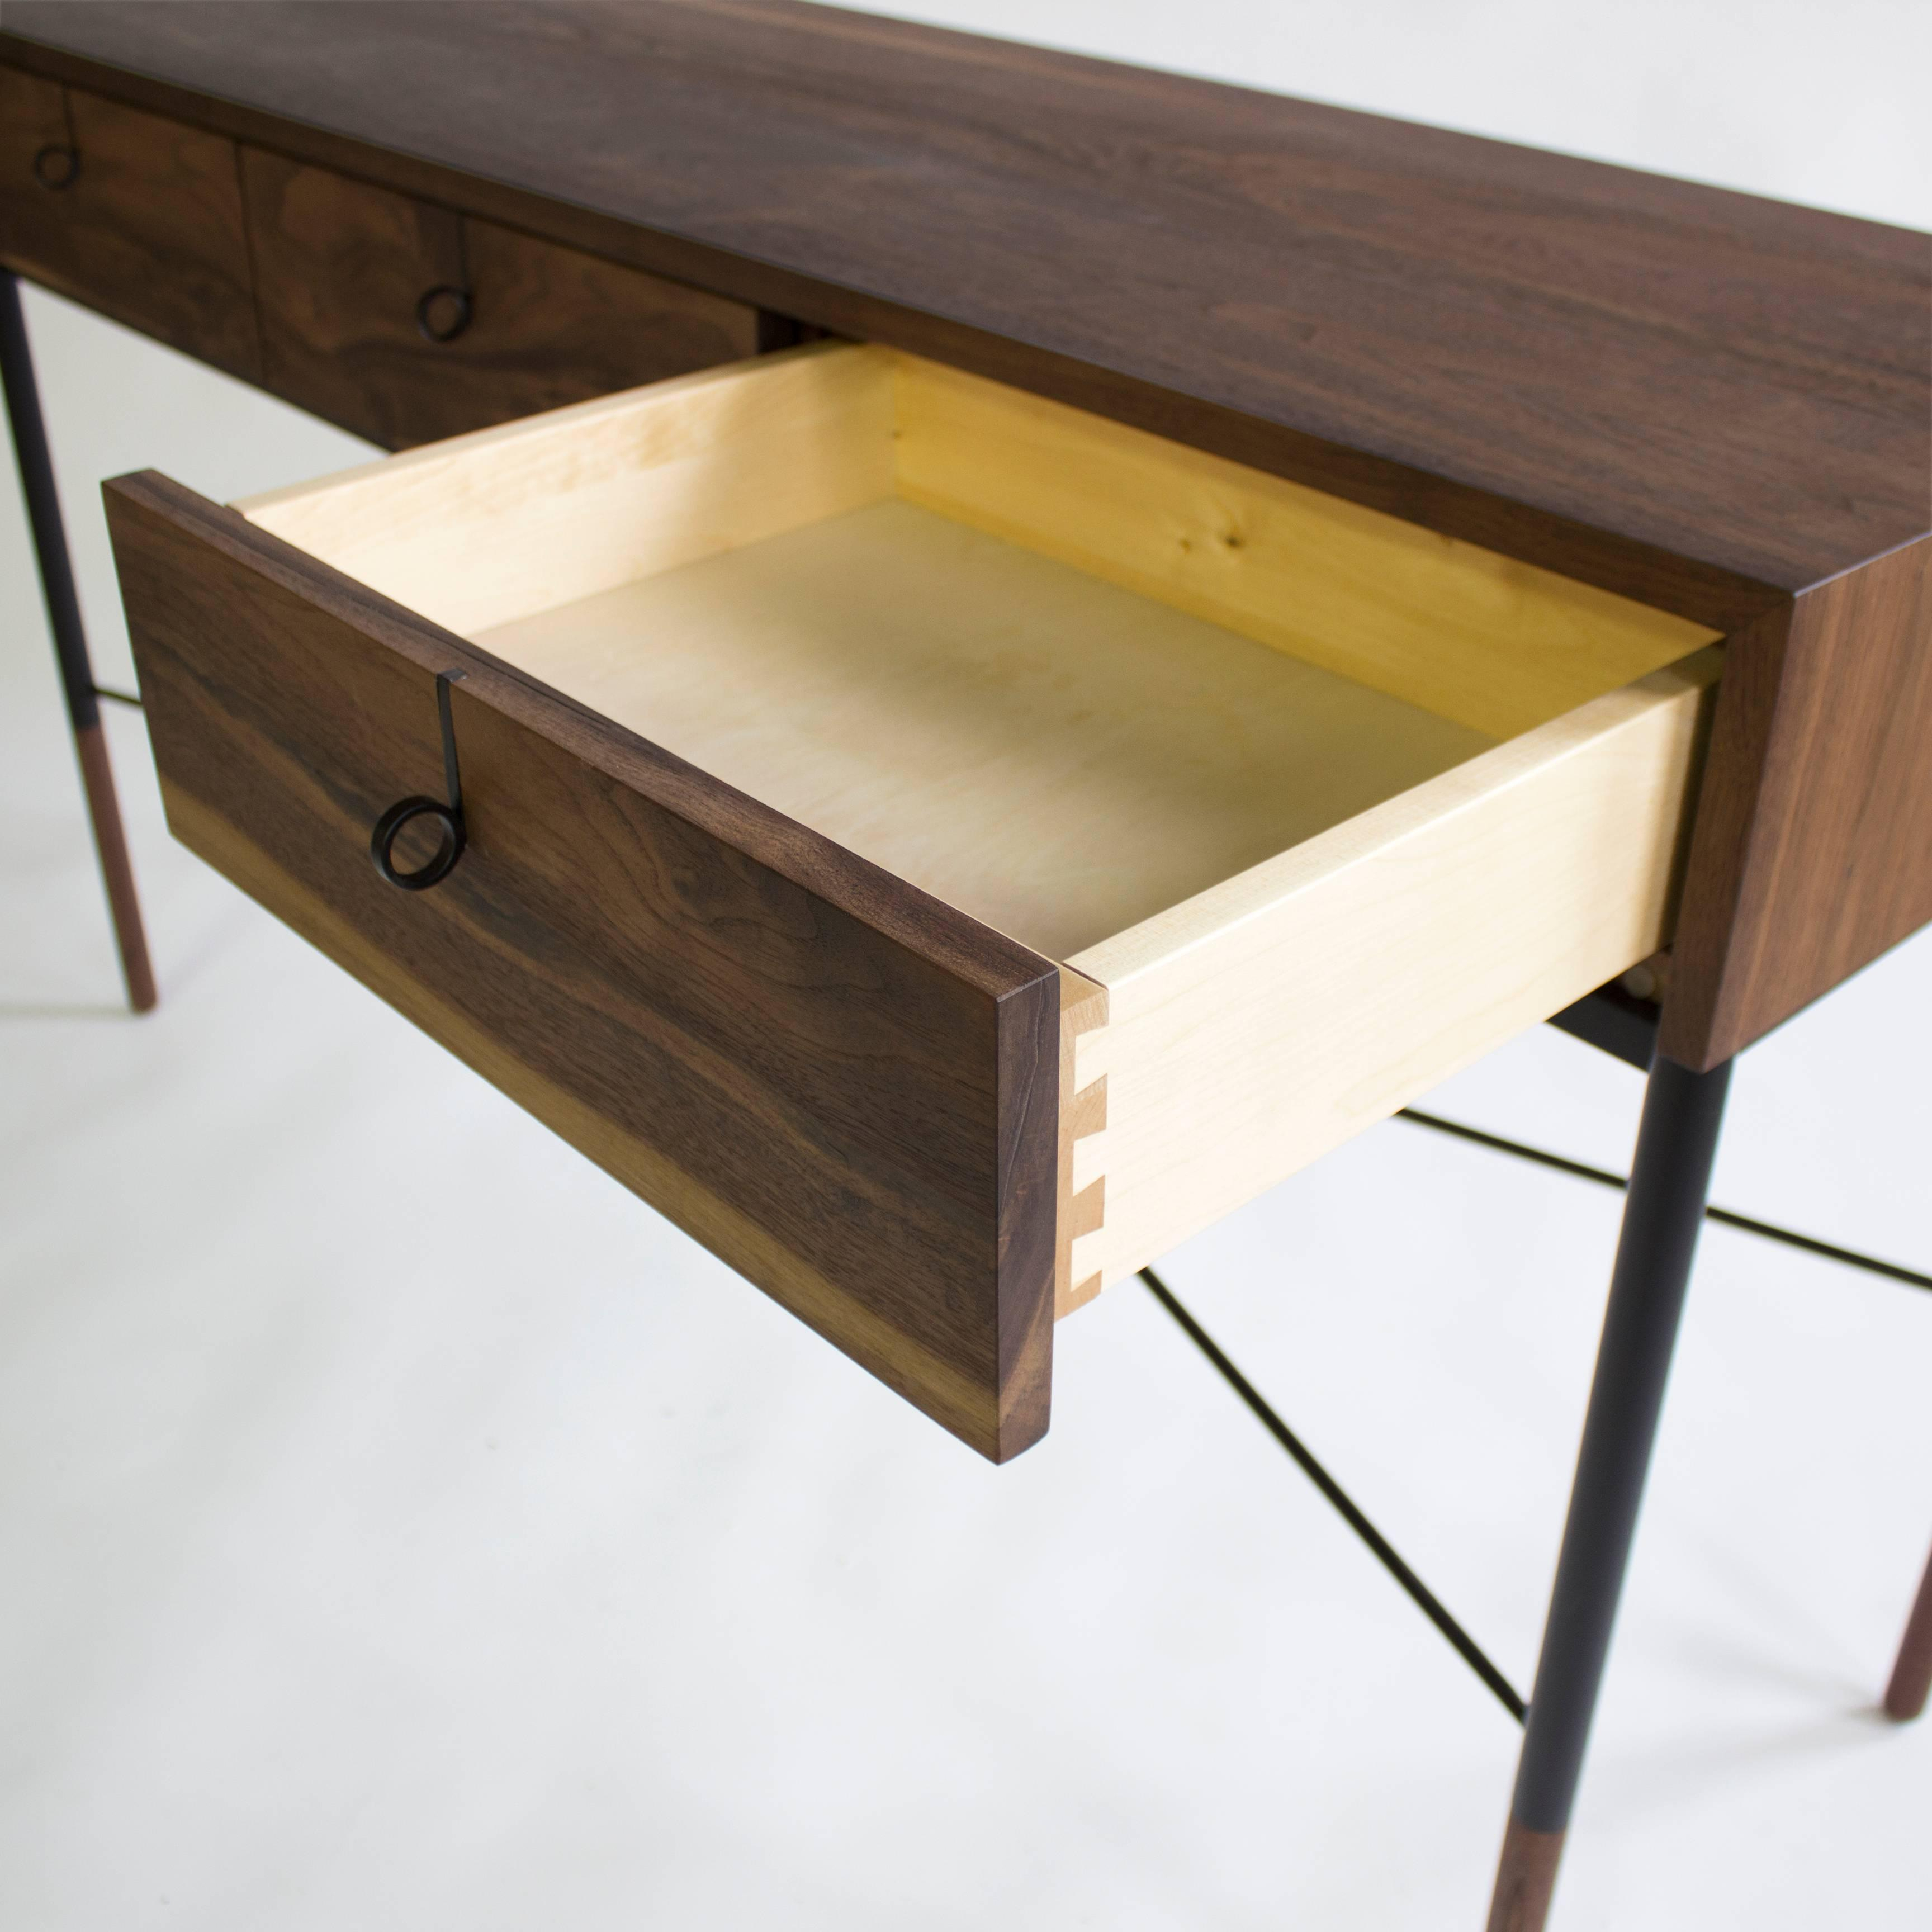 Phillip Console And Hall Table For Sale At 1Stdibs Inside Phillip Brass Console Tables (Photo 5 of 30)